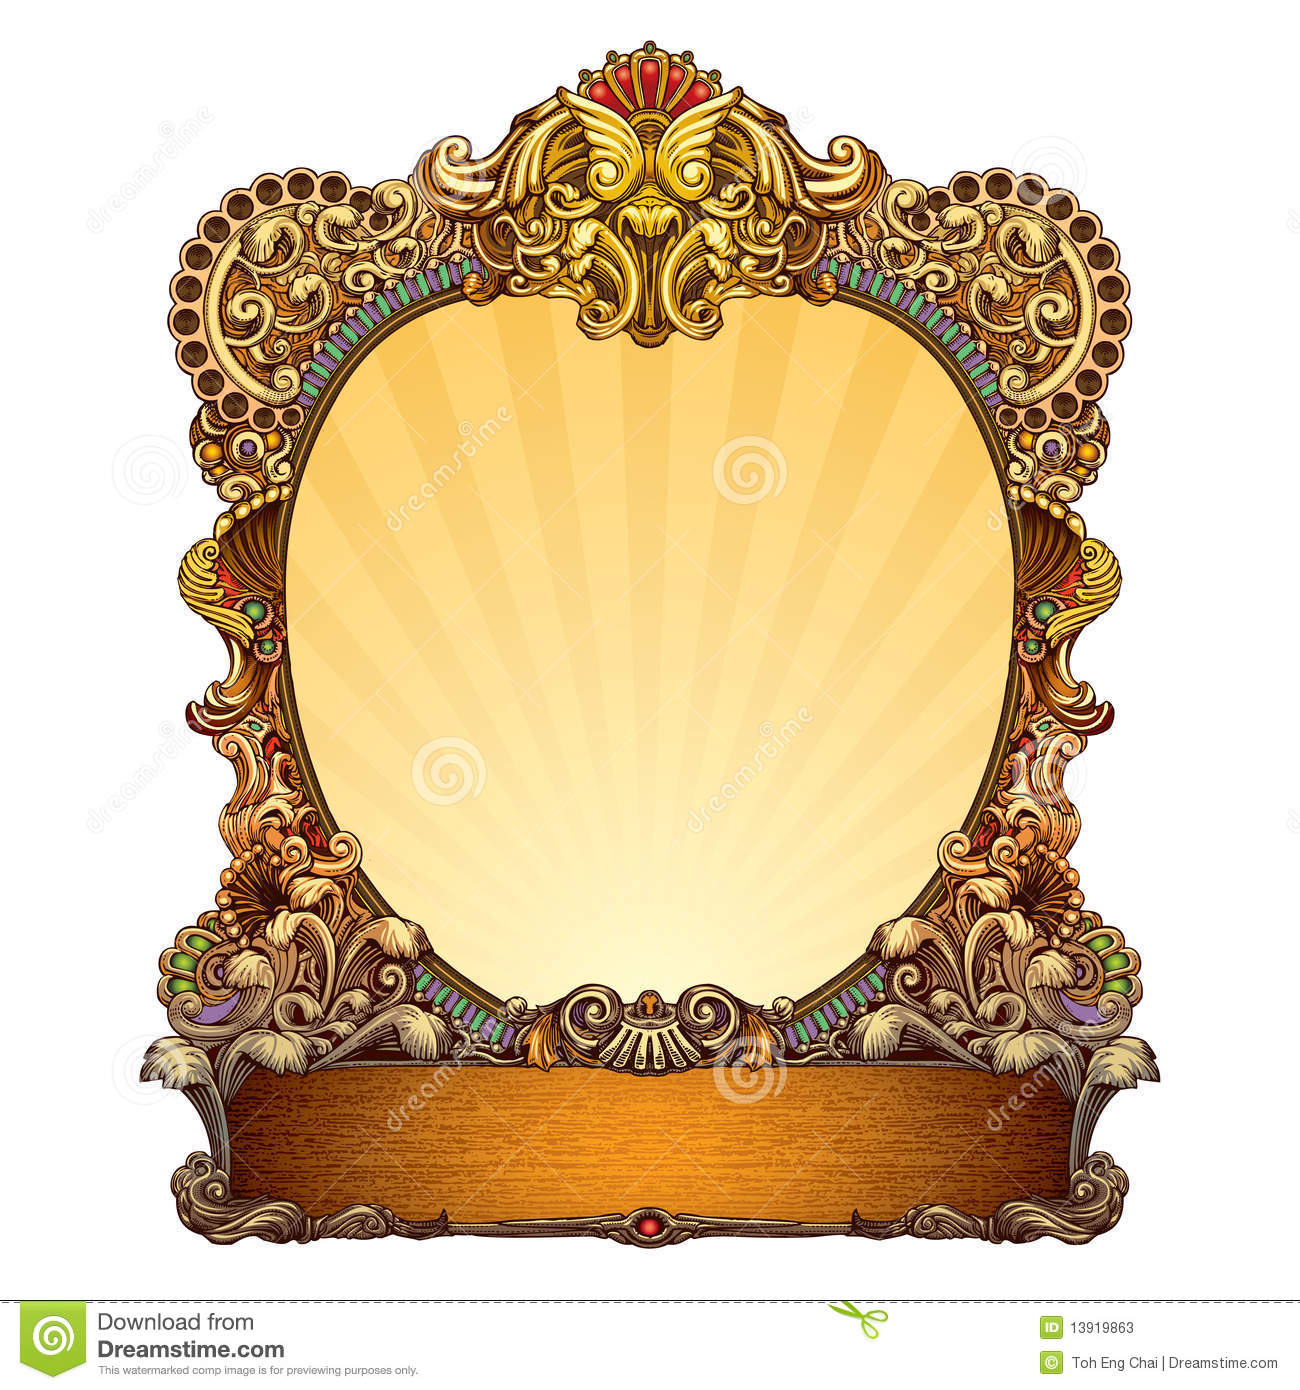 hand drawn ornate frame